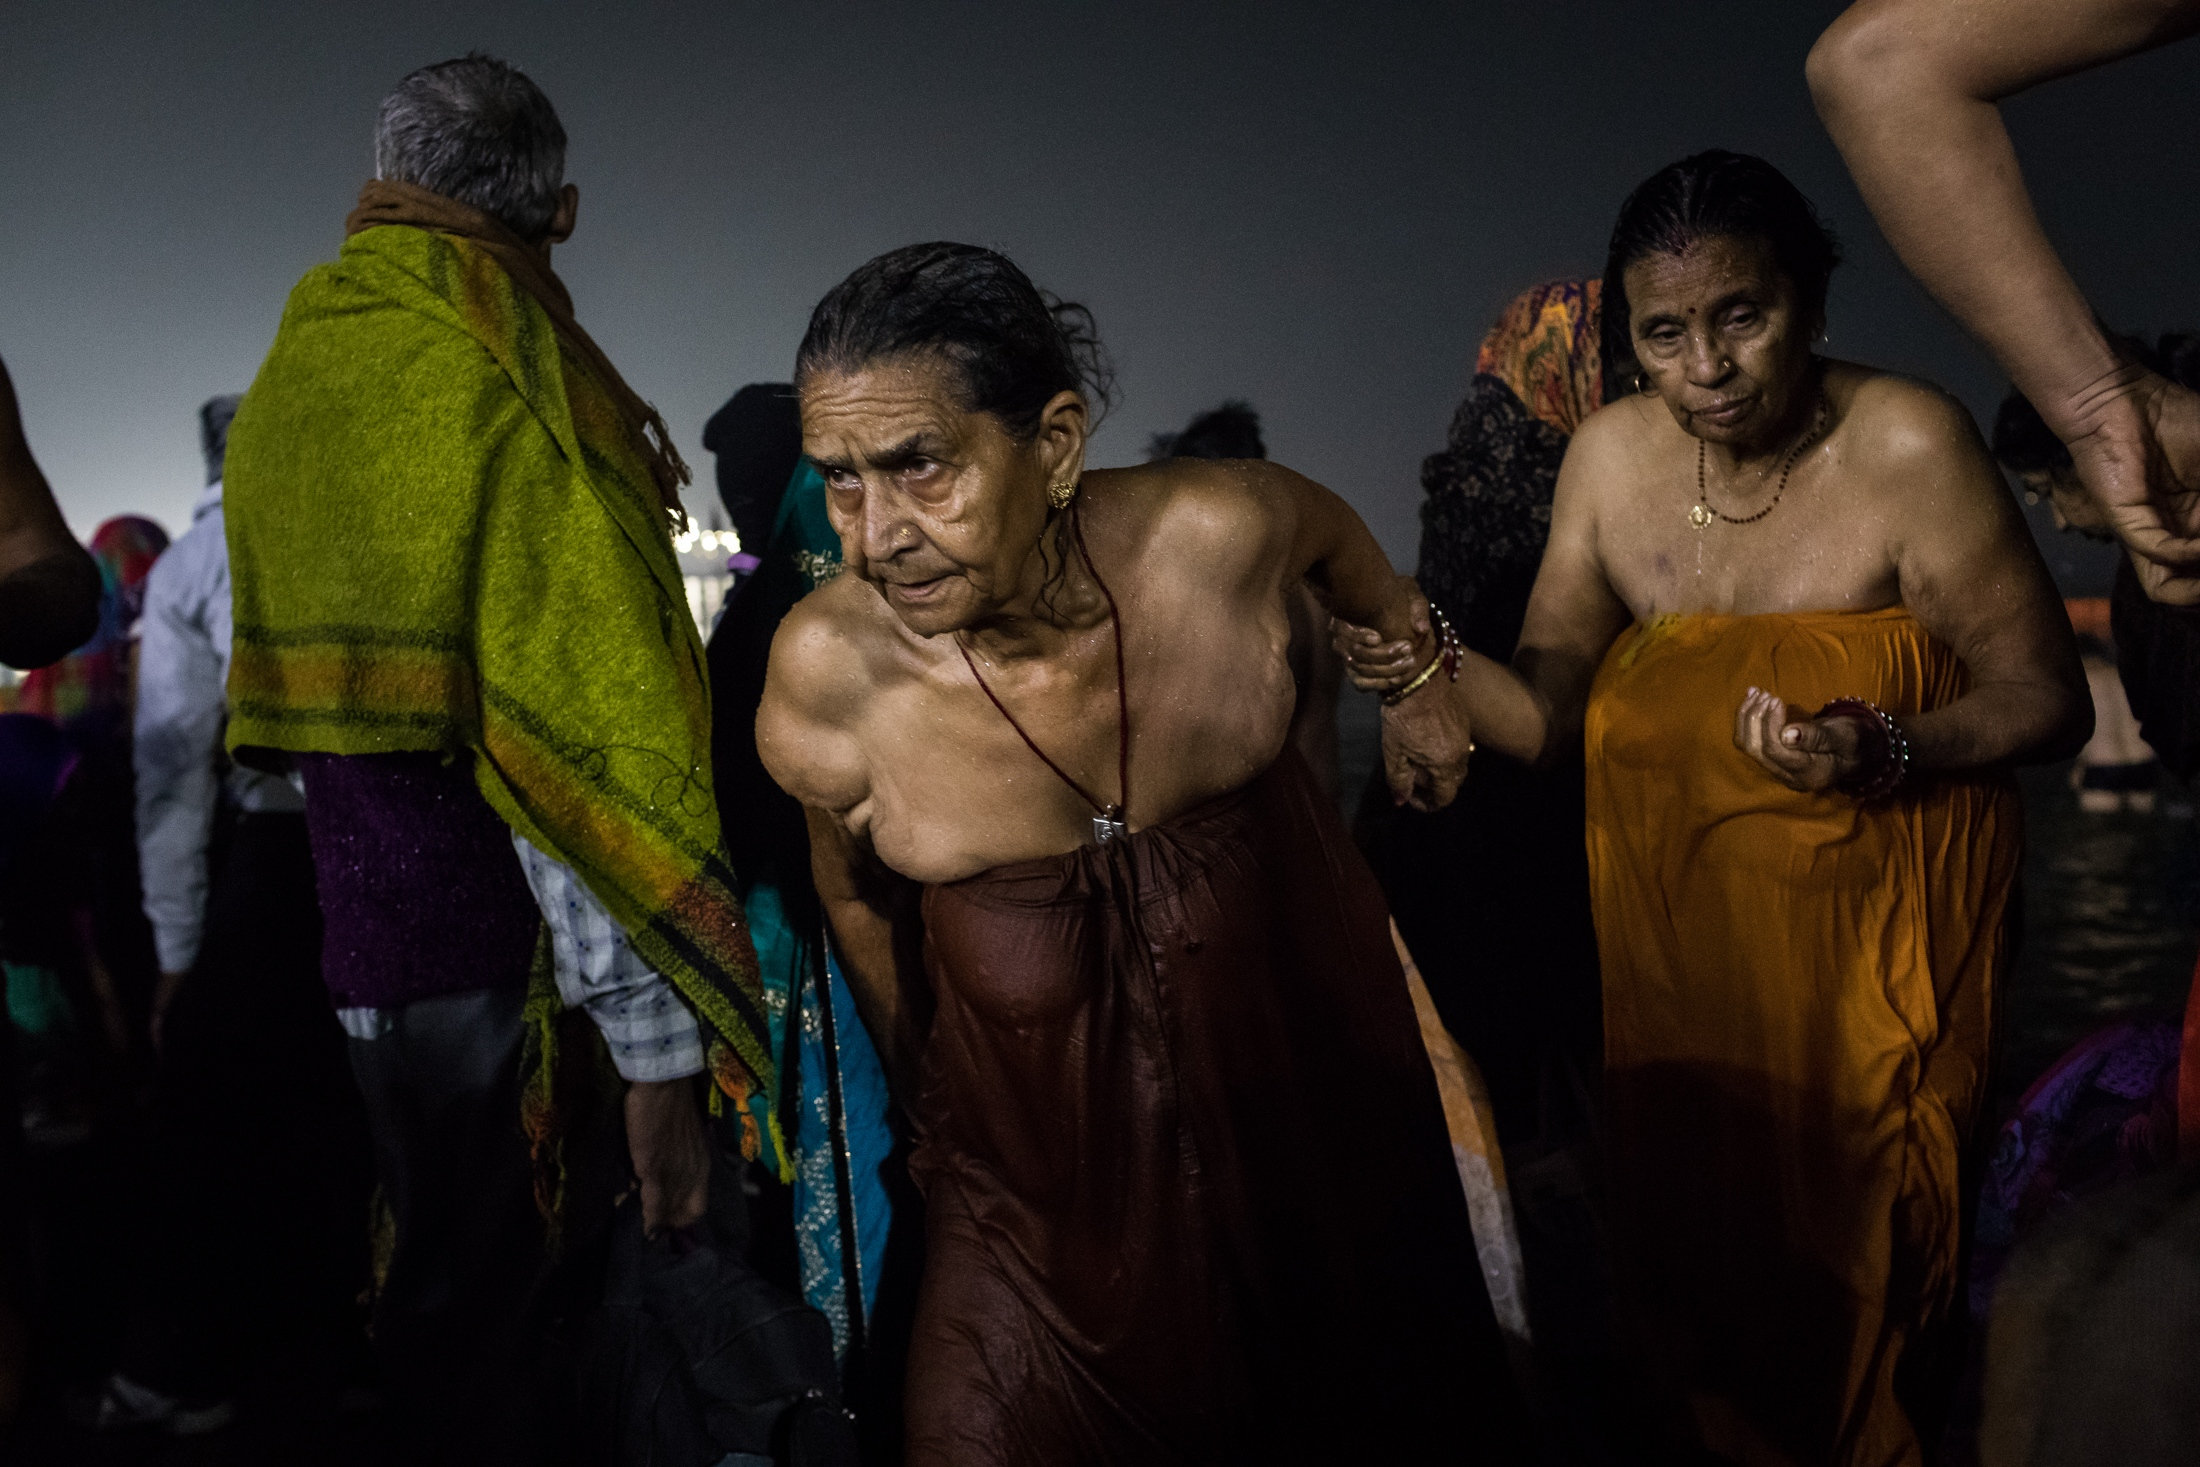 Two pilgrims go through the crowd after their holy bath, Prayagraj, February 2019.